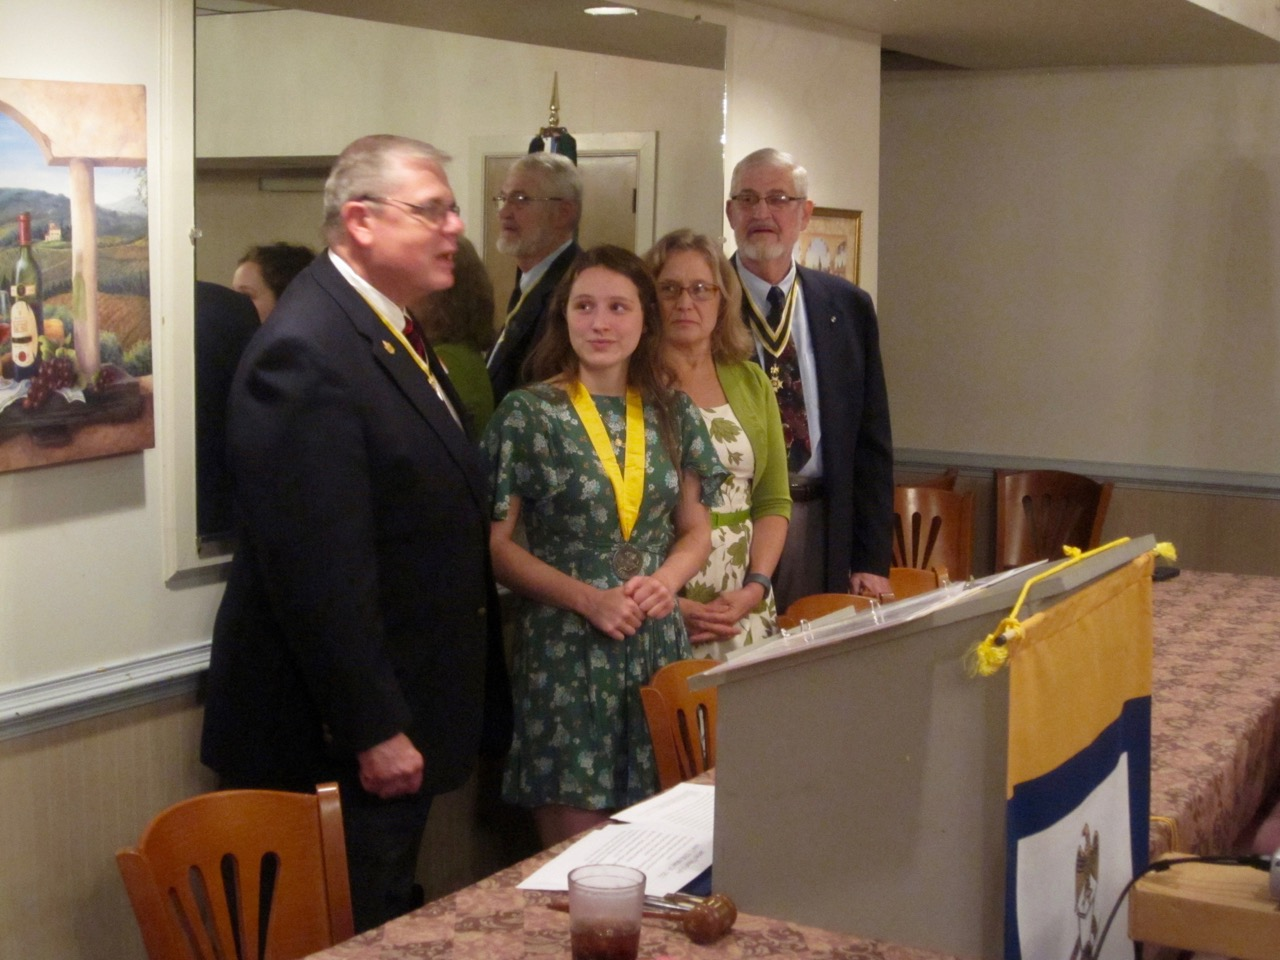 Past President Tom Whetstone and President Maury Weeks present Hannah Wheaton with her Knight Essay Certificate along with a check for $100.00 as her mother, Laurie Wheaton, looks on